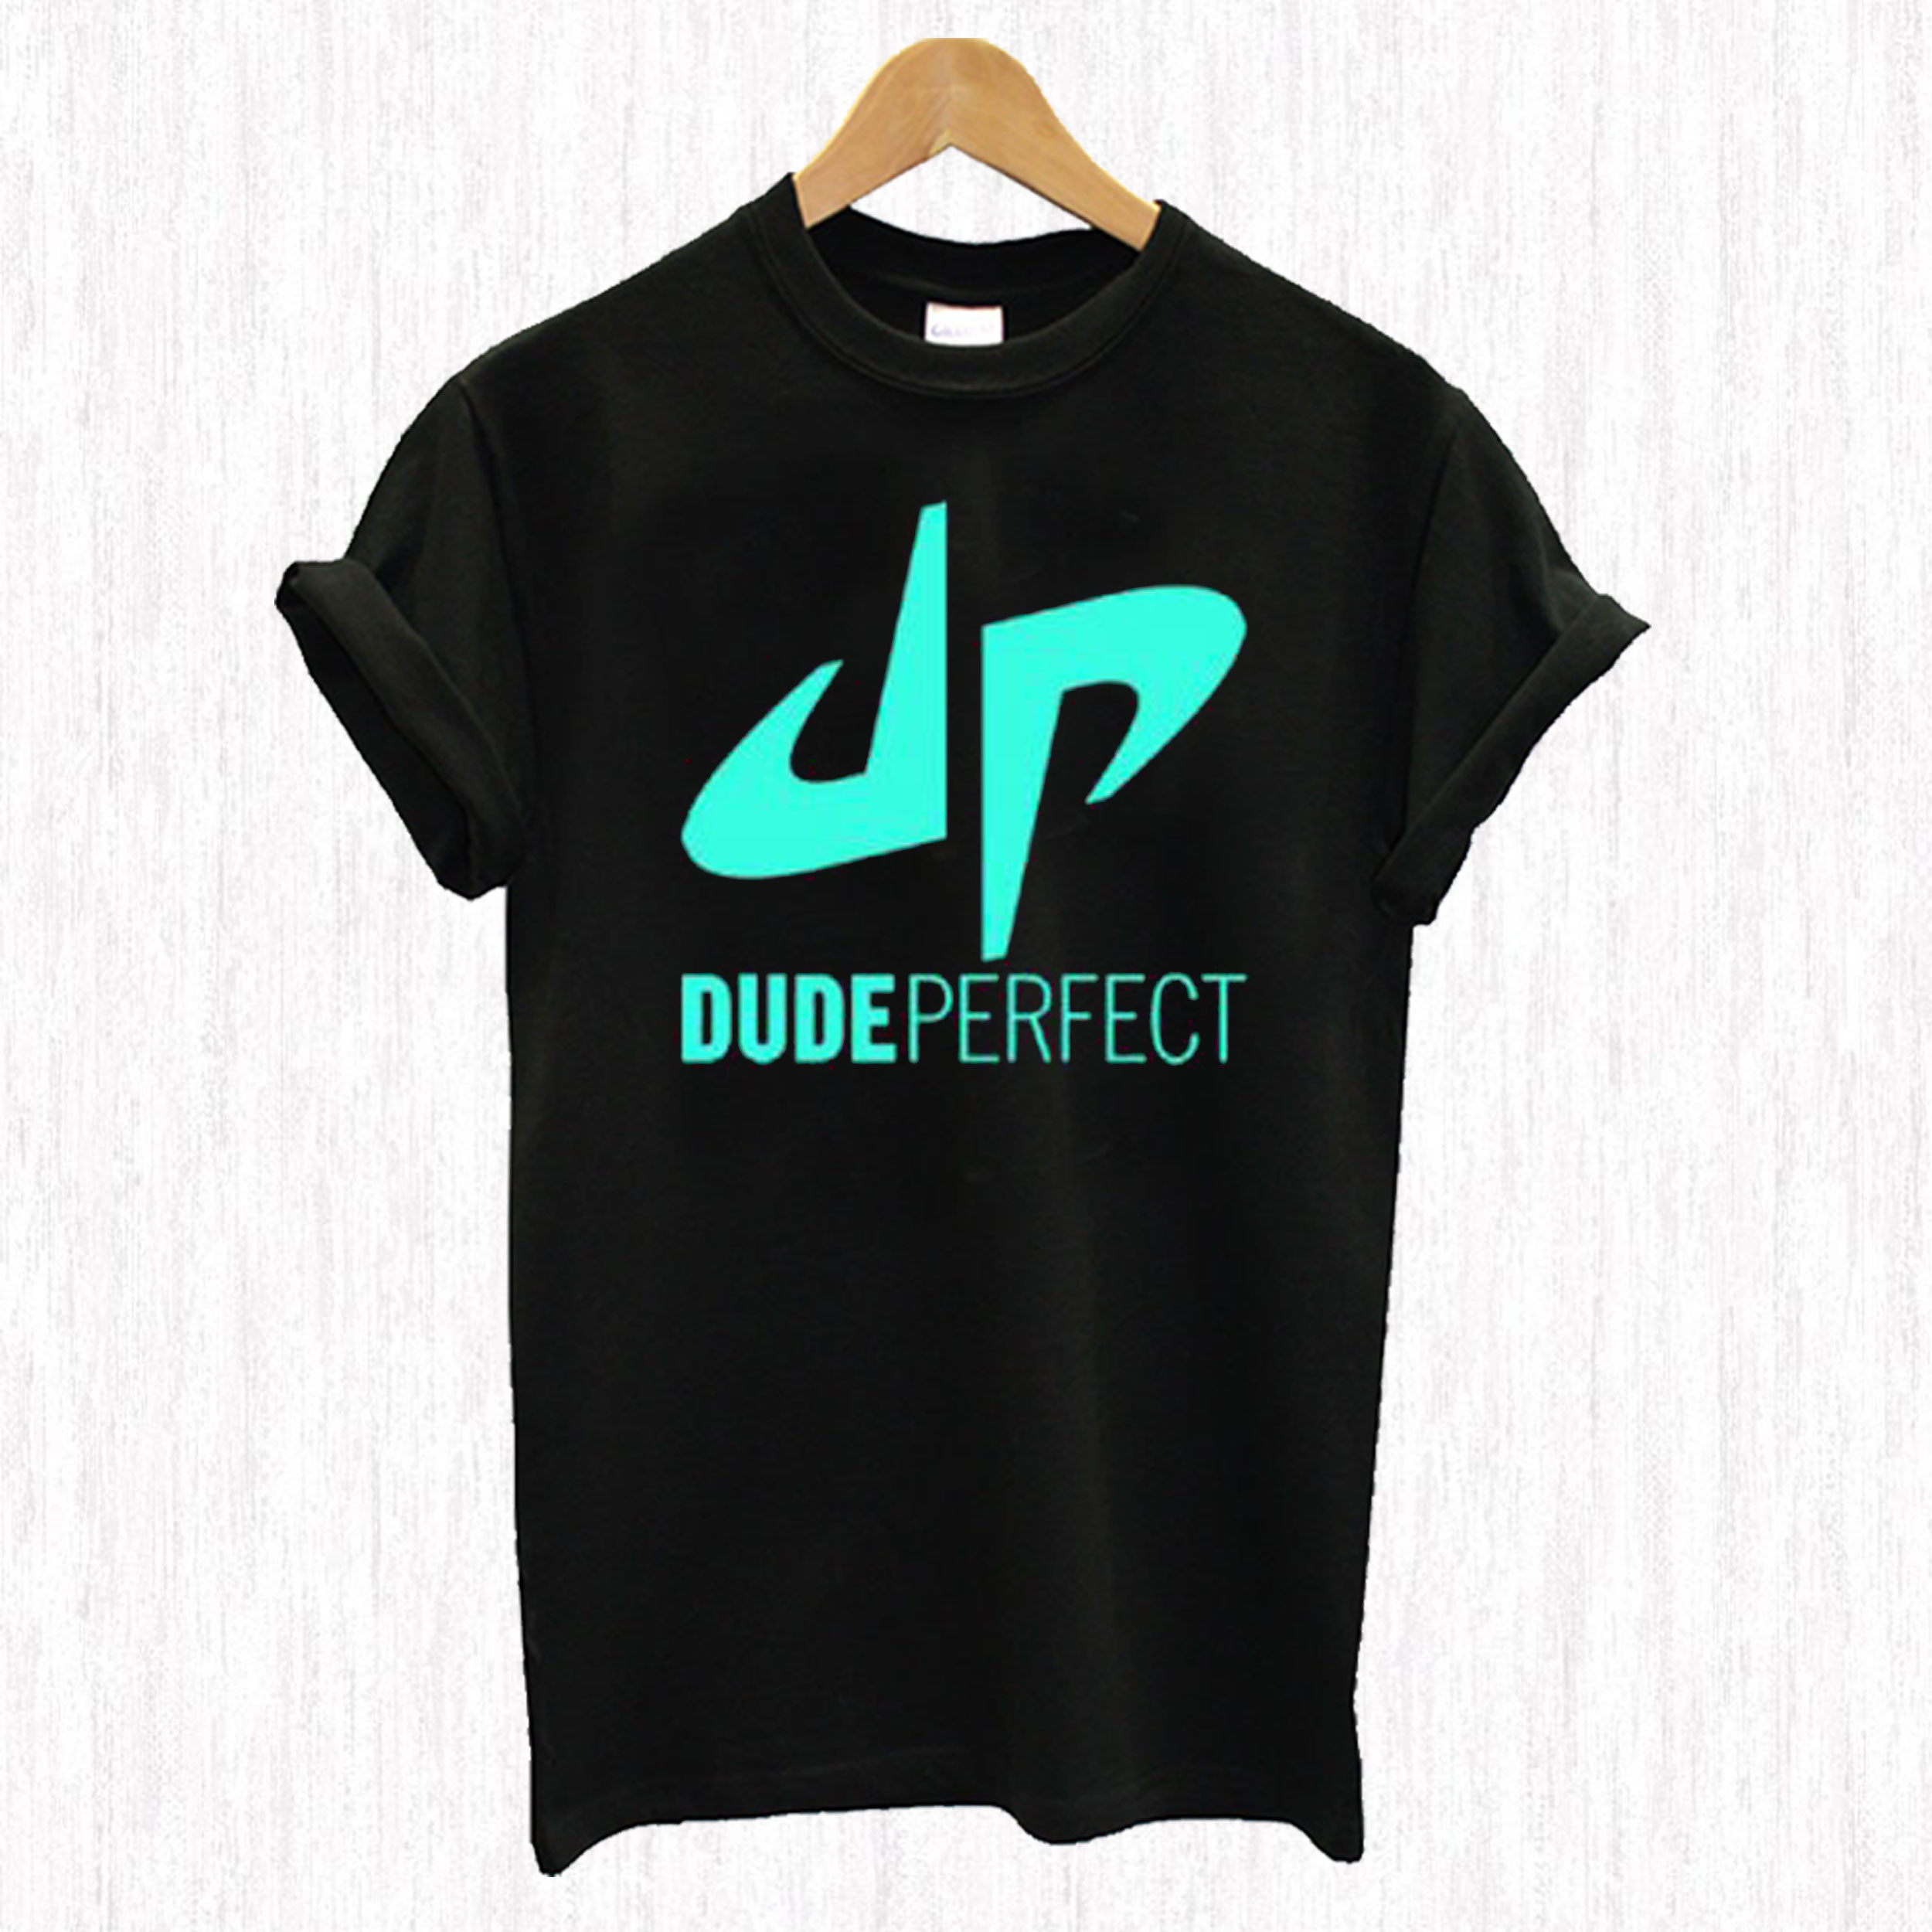 Dude Perfect Logo T Shirt Learn vocabulary, terms and more with flashcards, games and other study tools. dude perfect logo t shirt